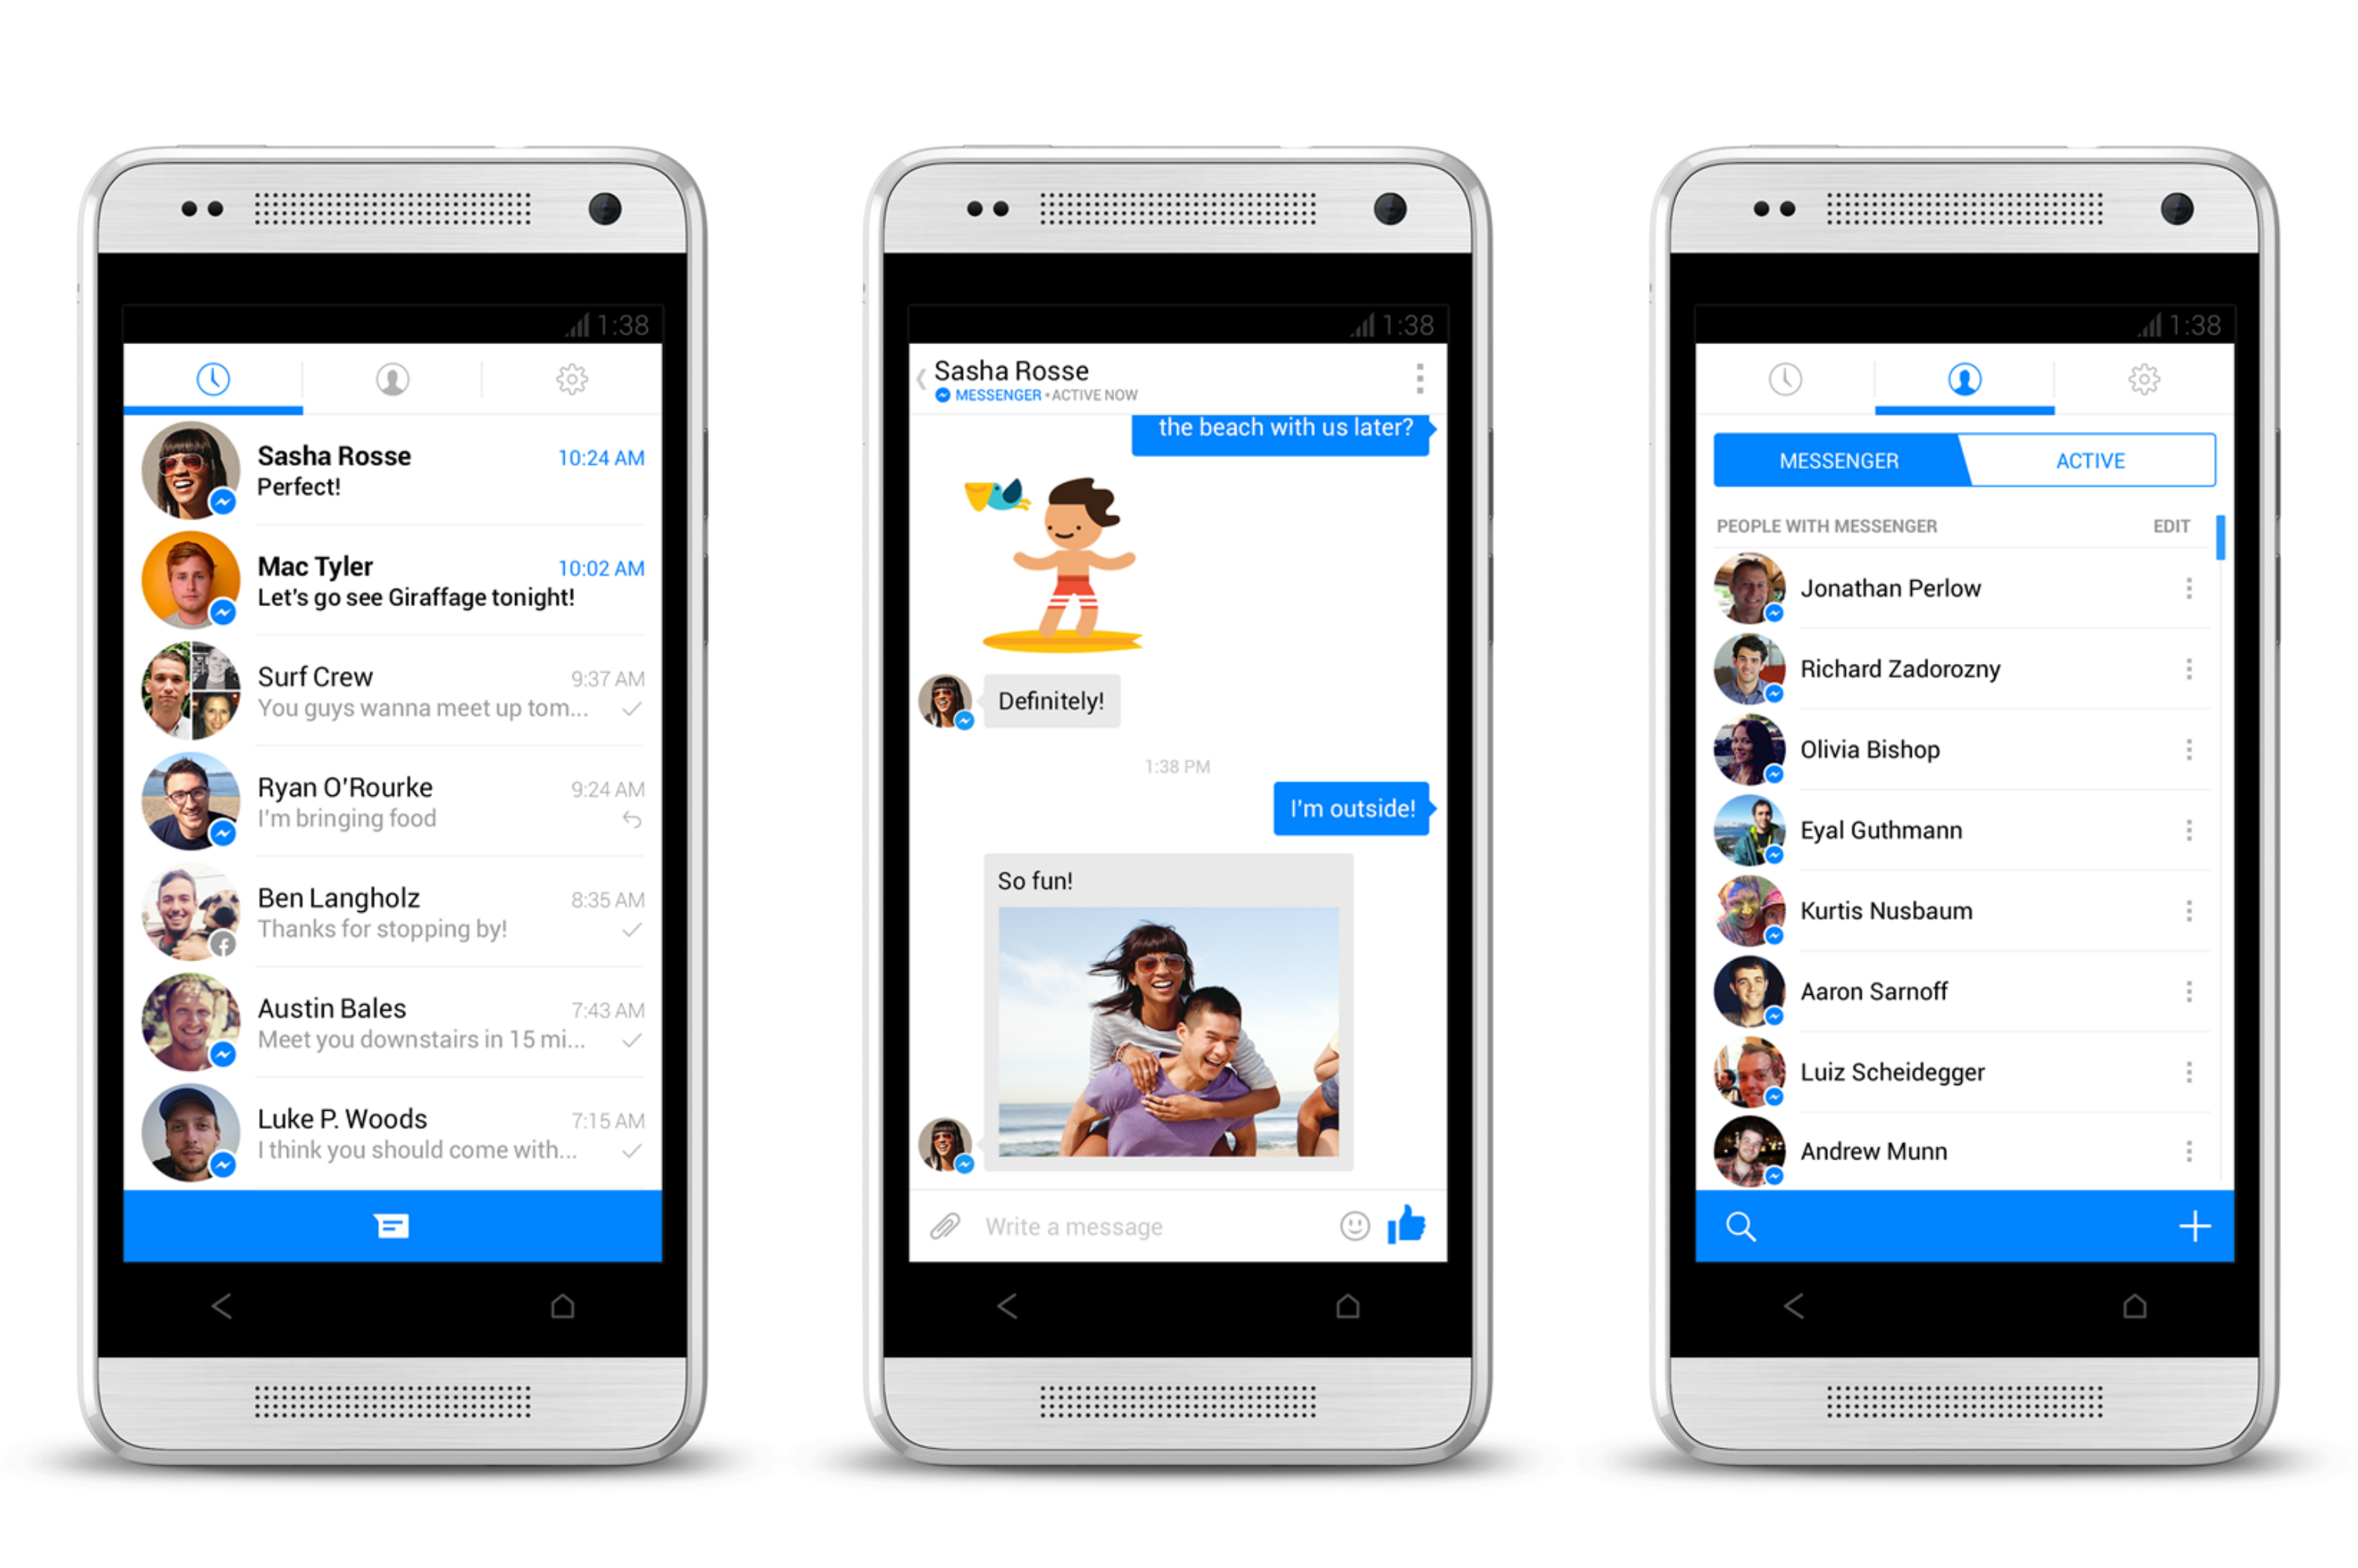 Facebook Messenger's AI assistant M arrives in the UK